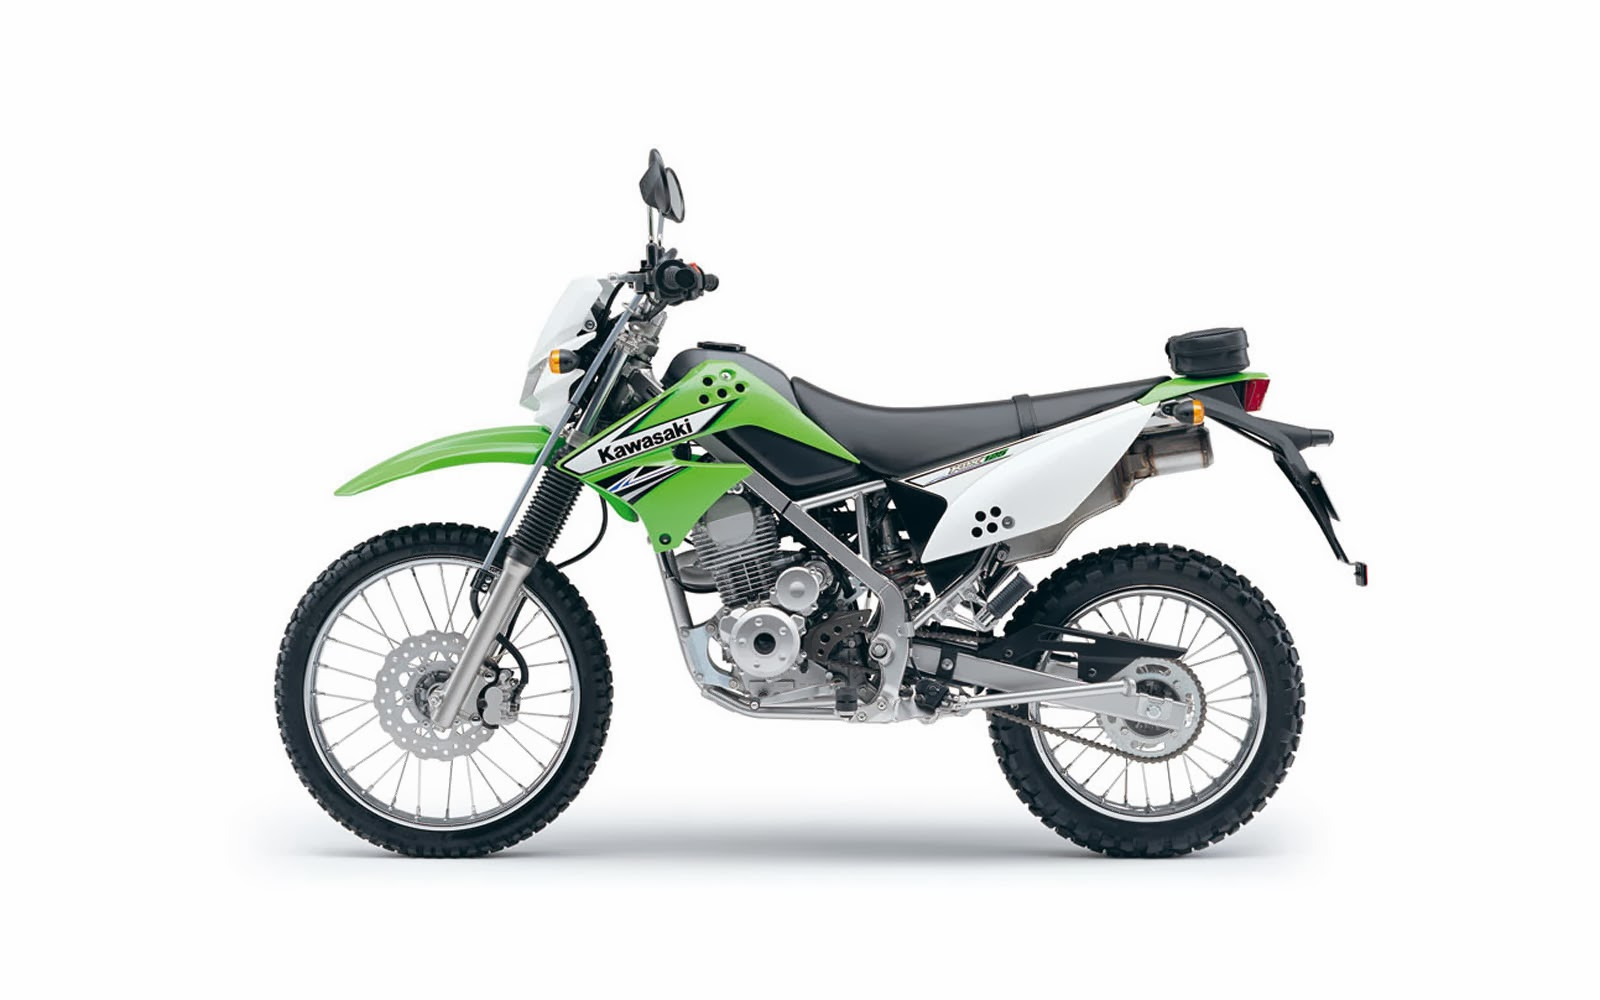 Kawasaki Klx 125 Wallpapers on 3d car windows